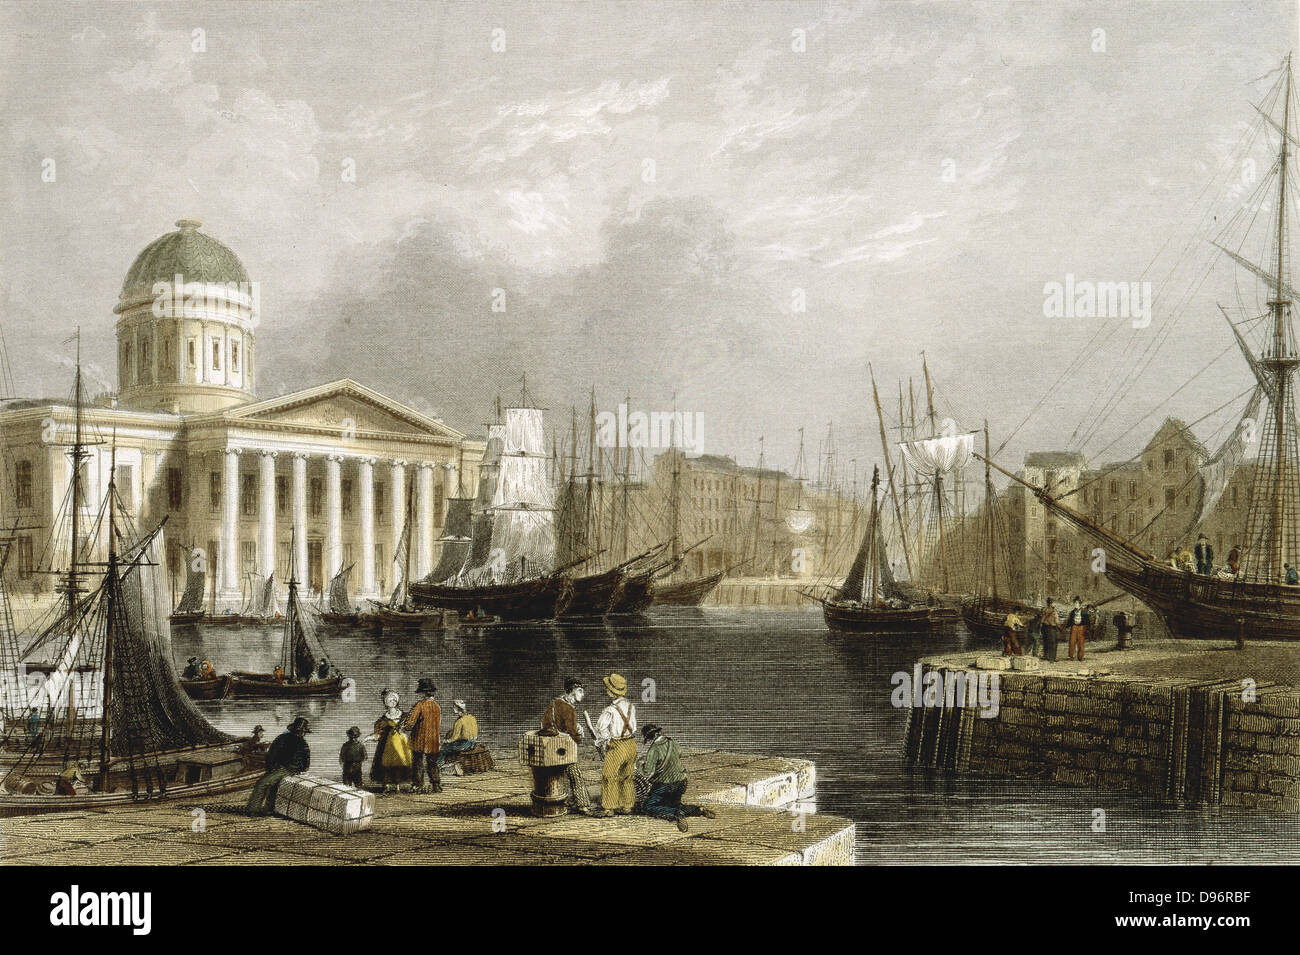 Liverpool: Canning Dock, showing the Custom House, sailing vessels in the basin and warehouses on the dockside. - Stock Image